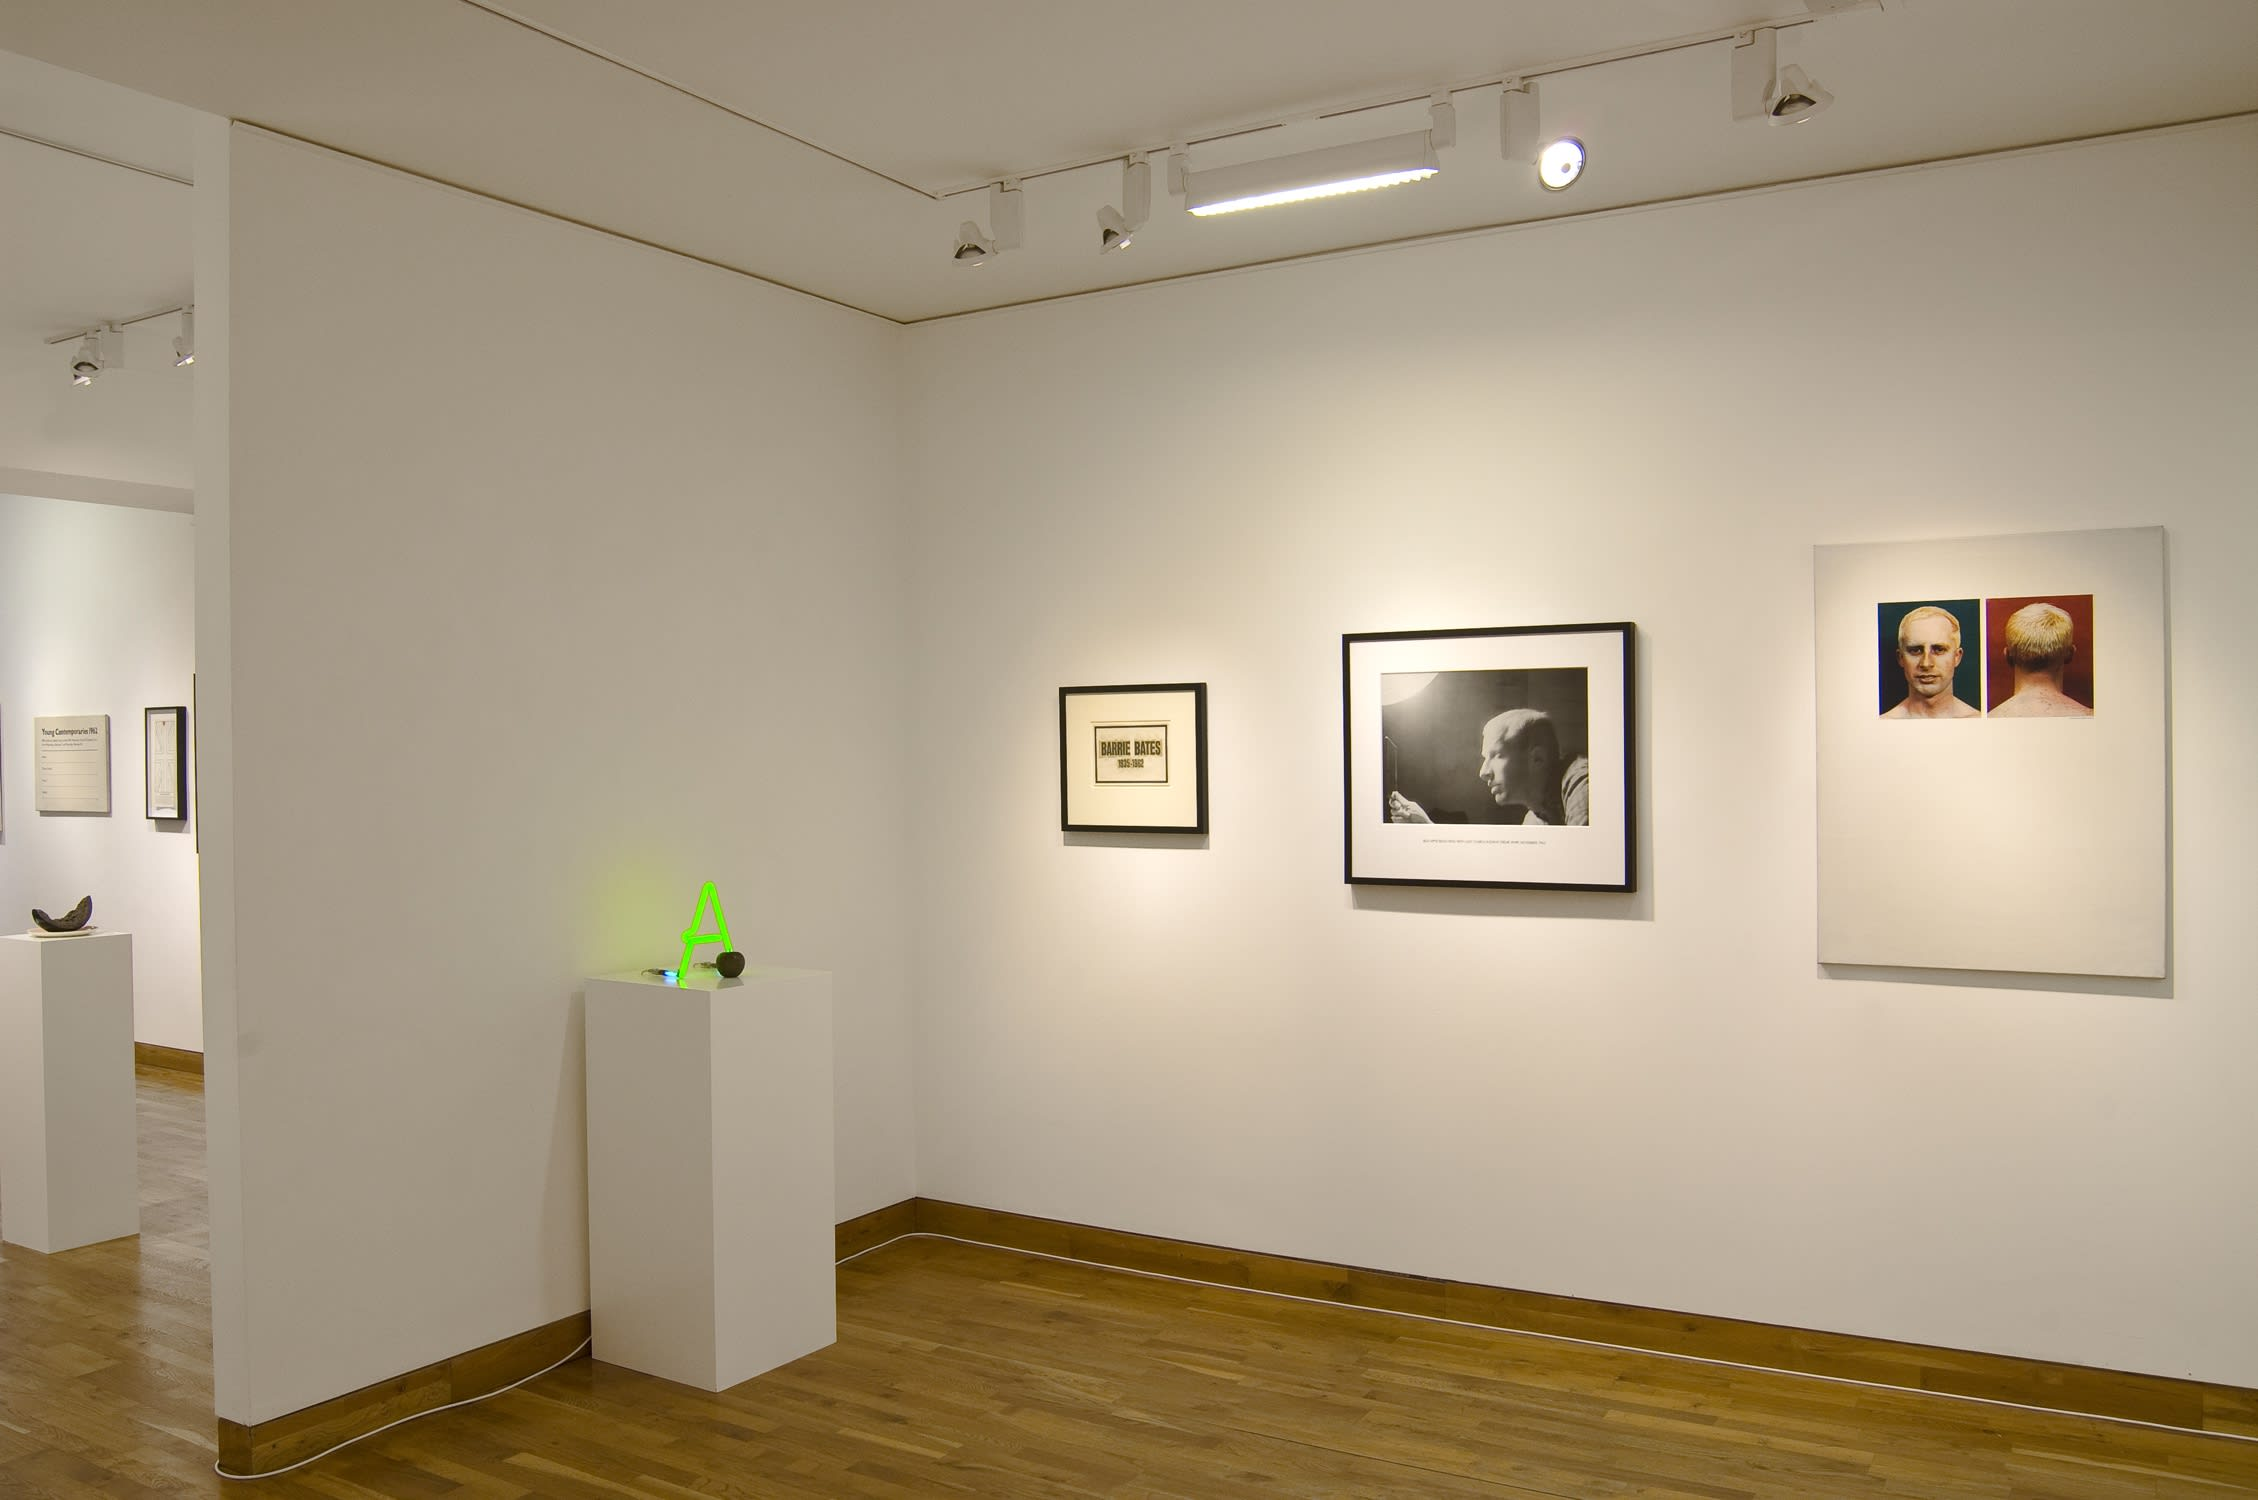 "<span class=""link fancybox-details-link""><a href=""/exhibitions/83/works/image_standalone247/"">View Detail Page</a></span><p>BILLY APPLE 